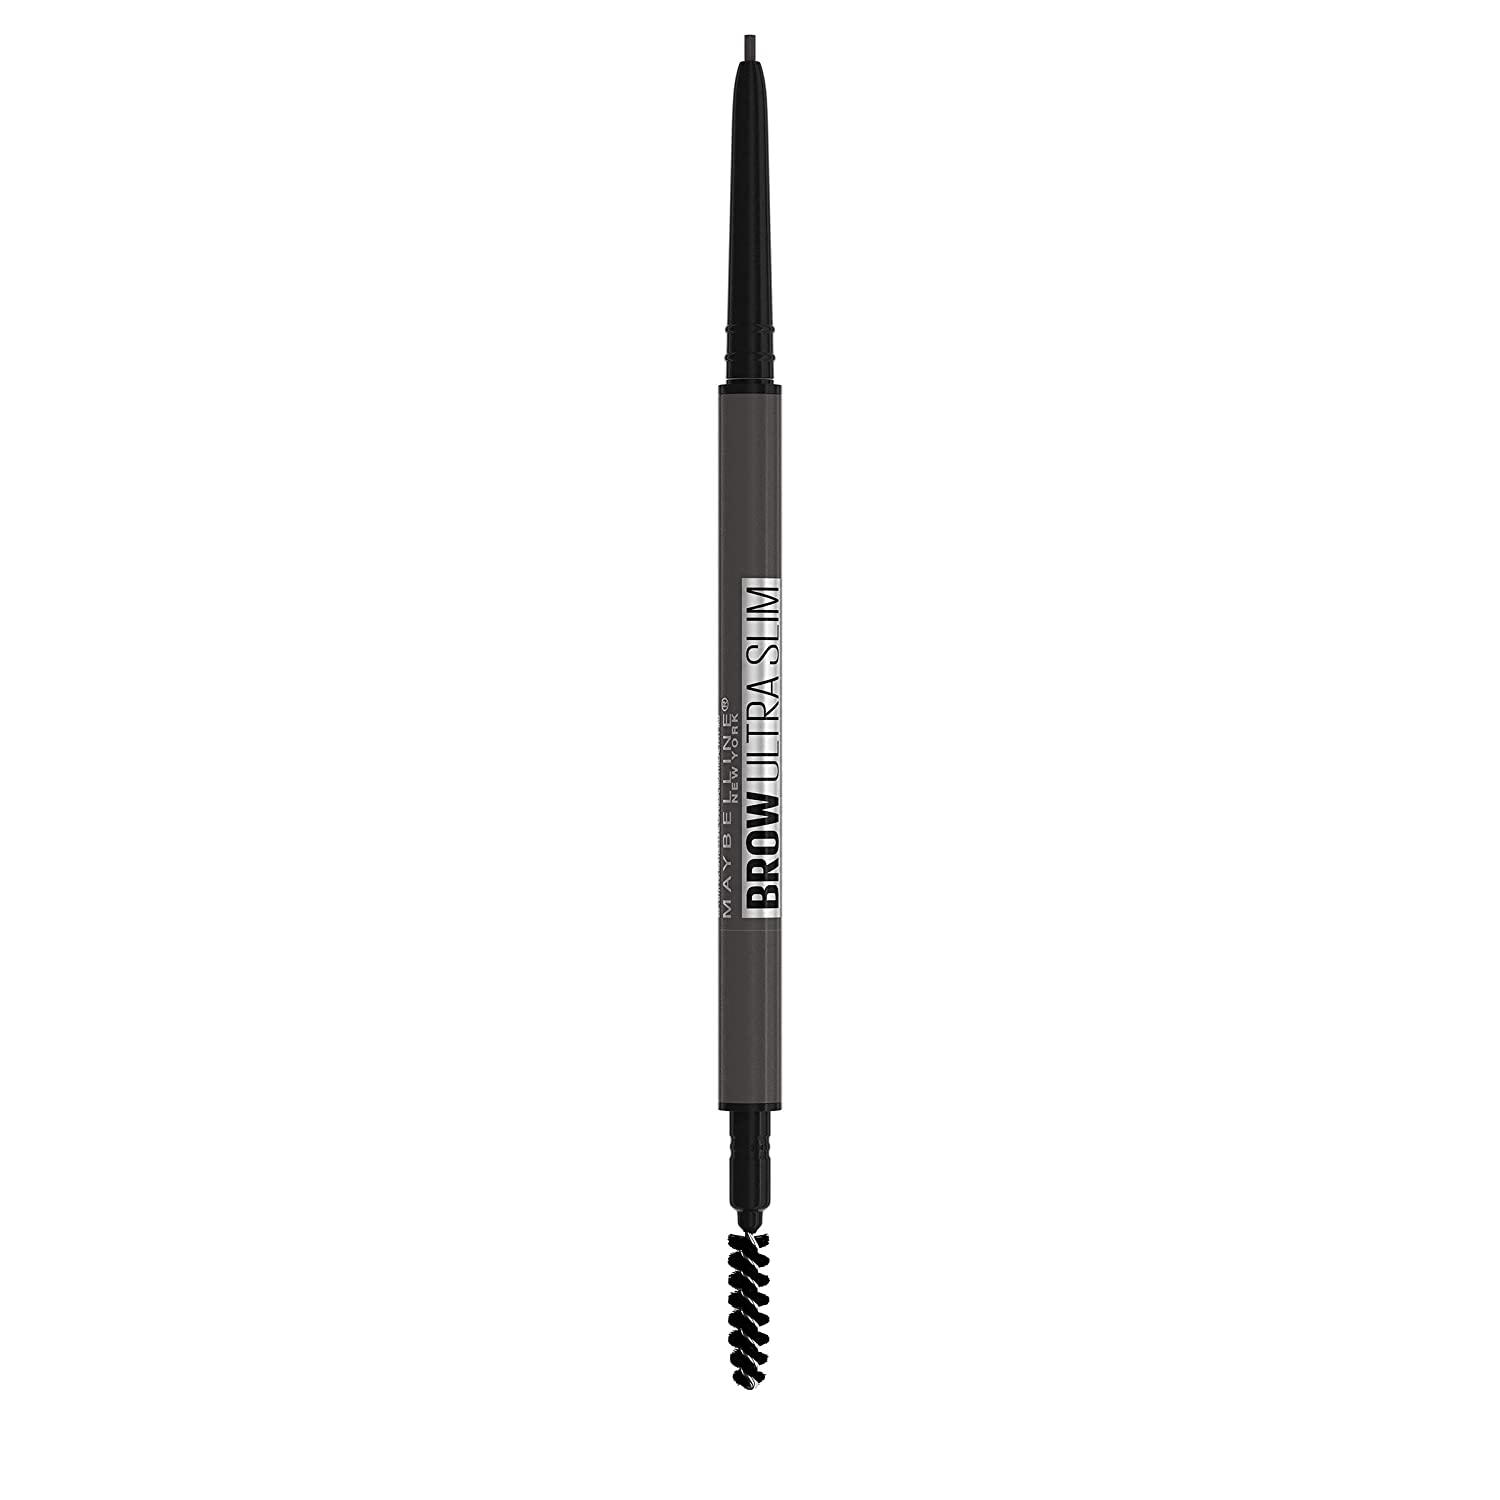 Maybelline Brow Ultra slim Defining Eyebrow pencil Review